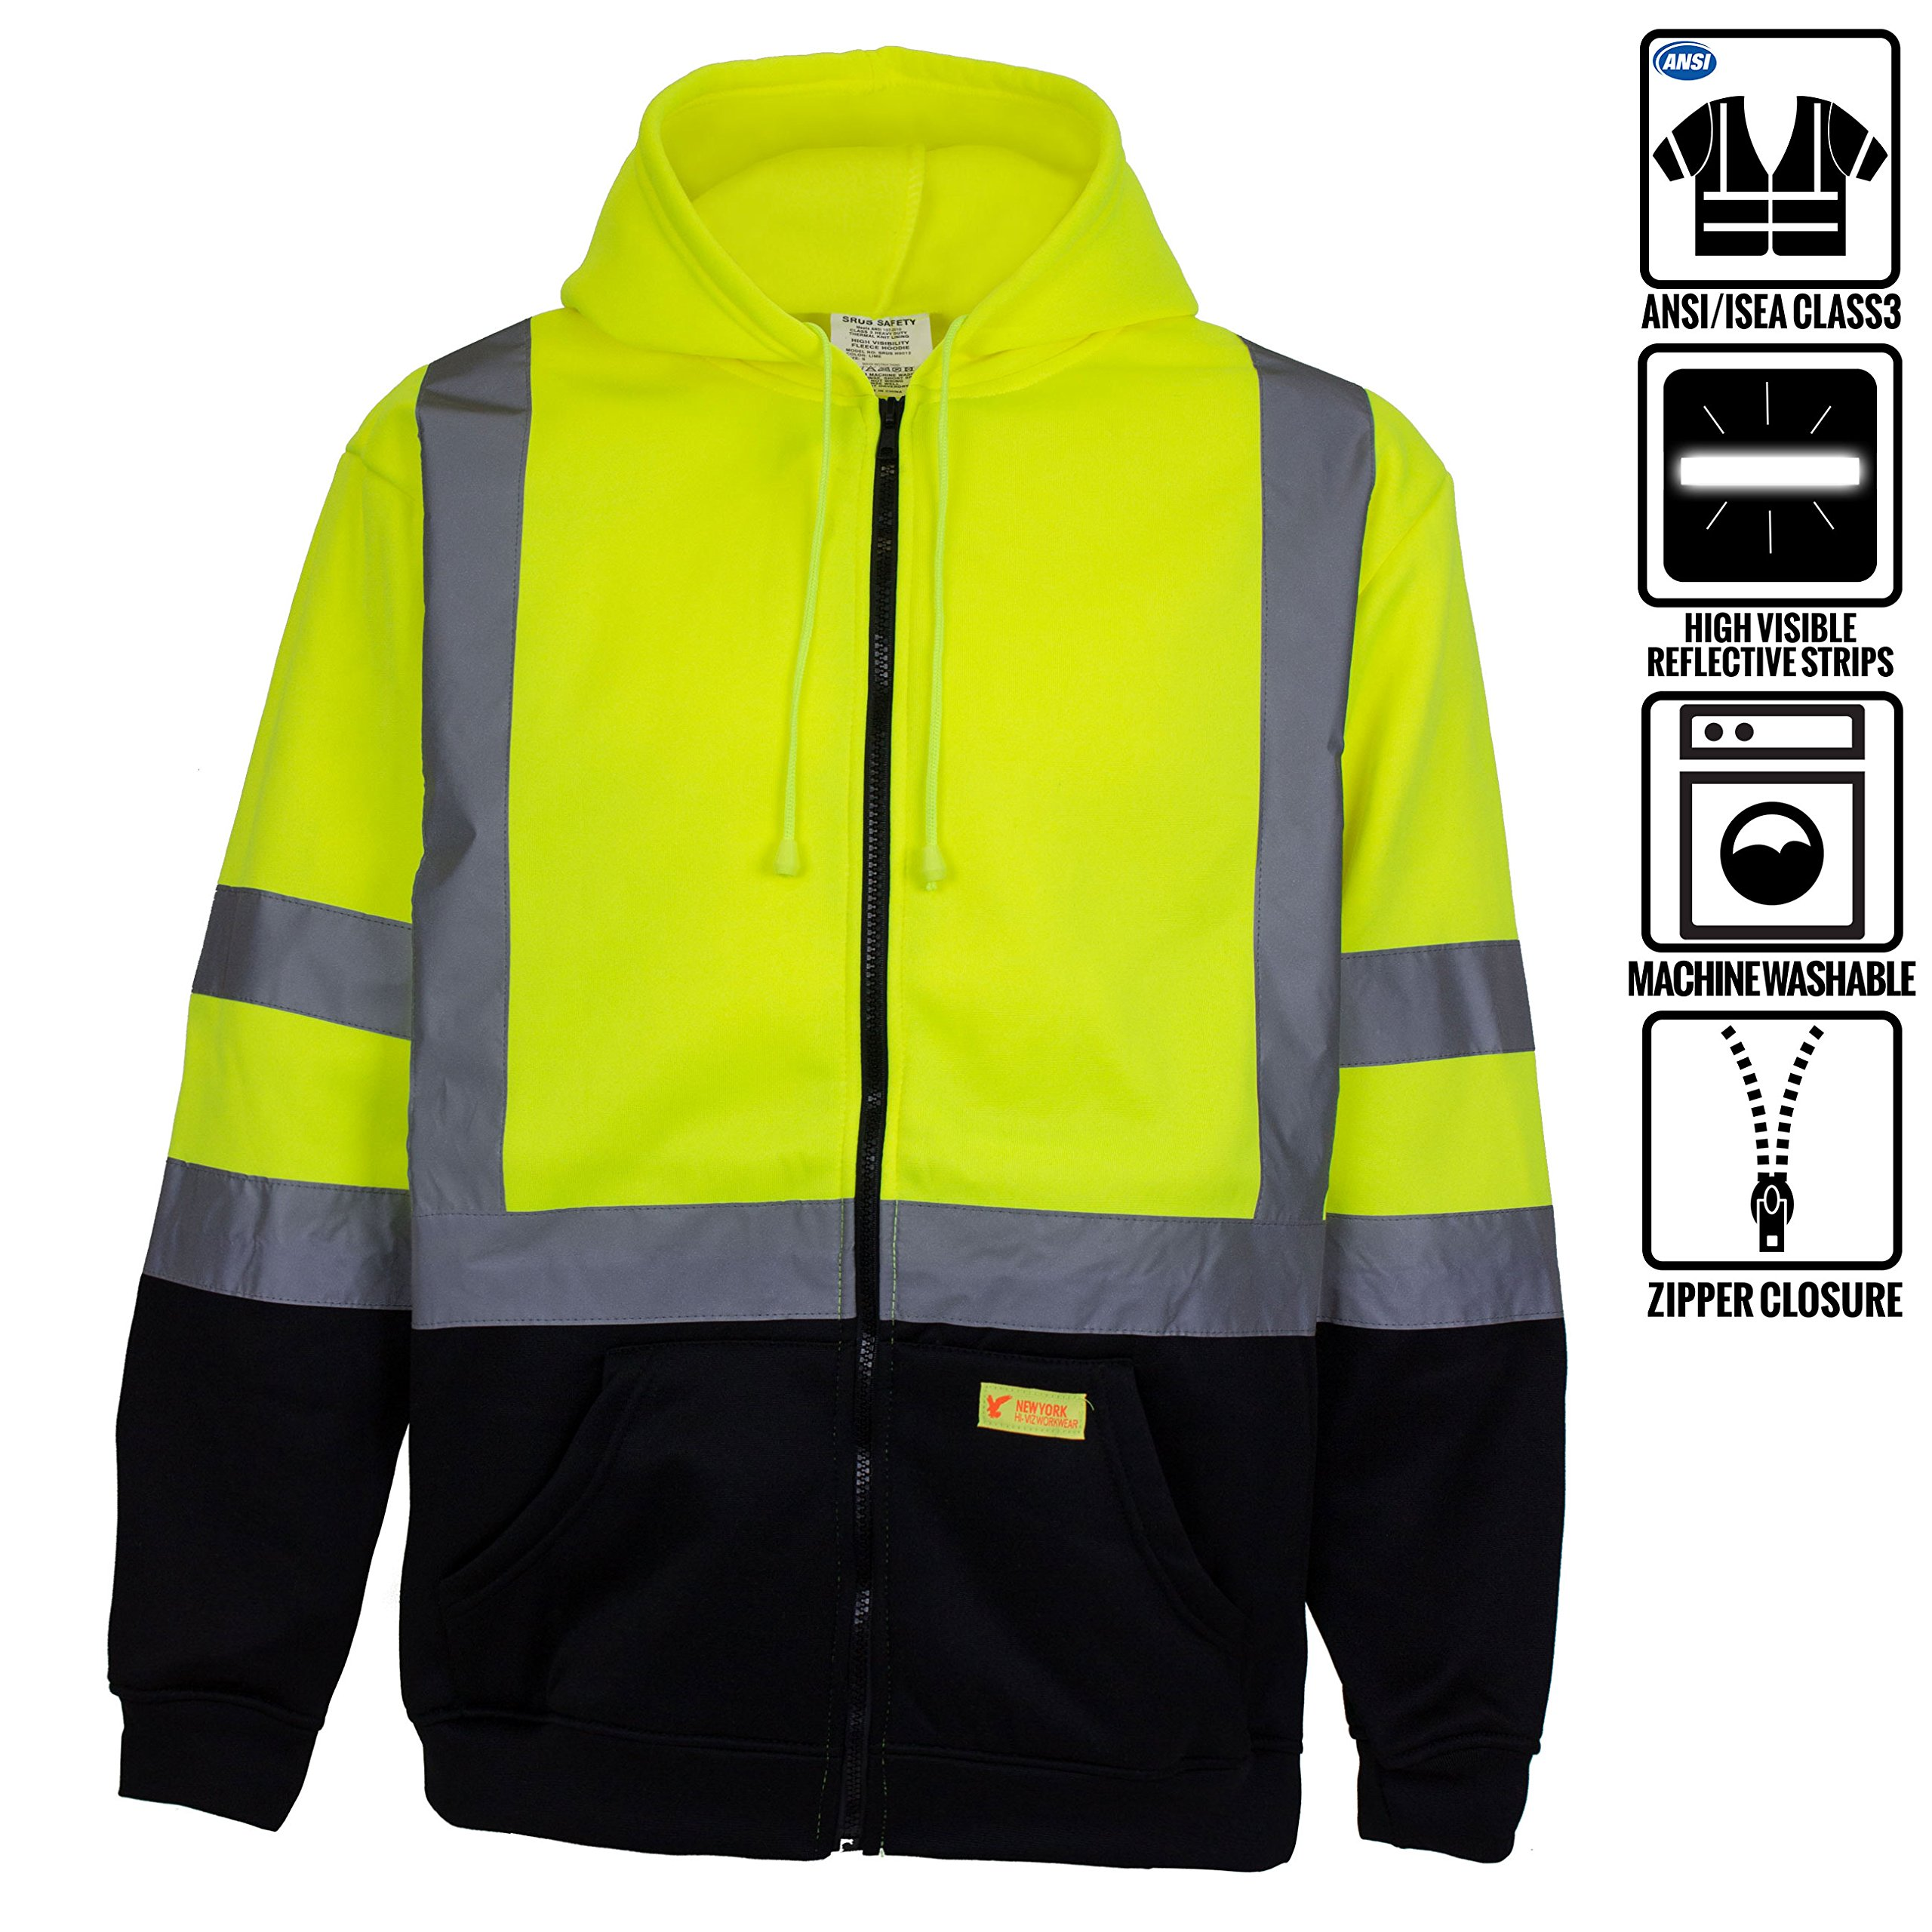 New York Hi-Viz Workwear H9012 Men's ANSI Class 3 High Visibility Class 3 Sweatshirt, Full Zip Hooded, Lightweight, Black Bottom (X-Large)